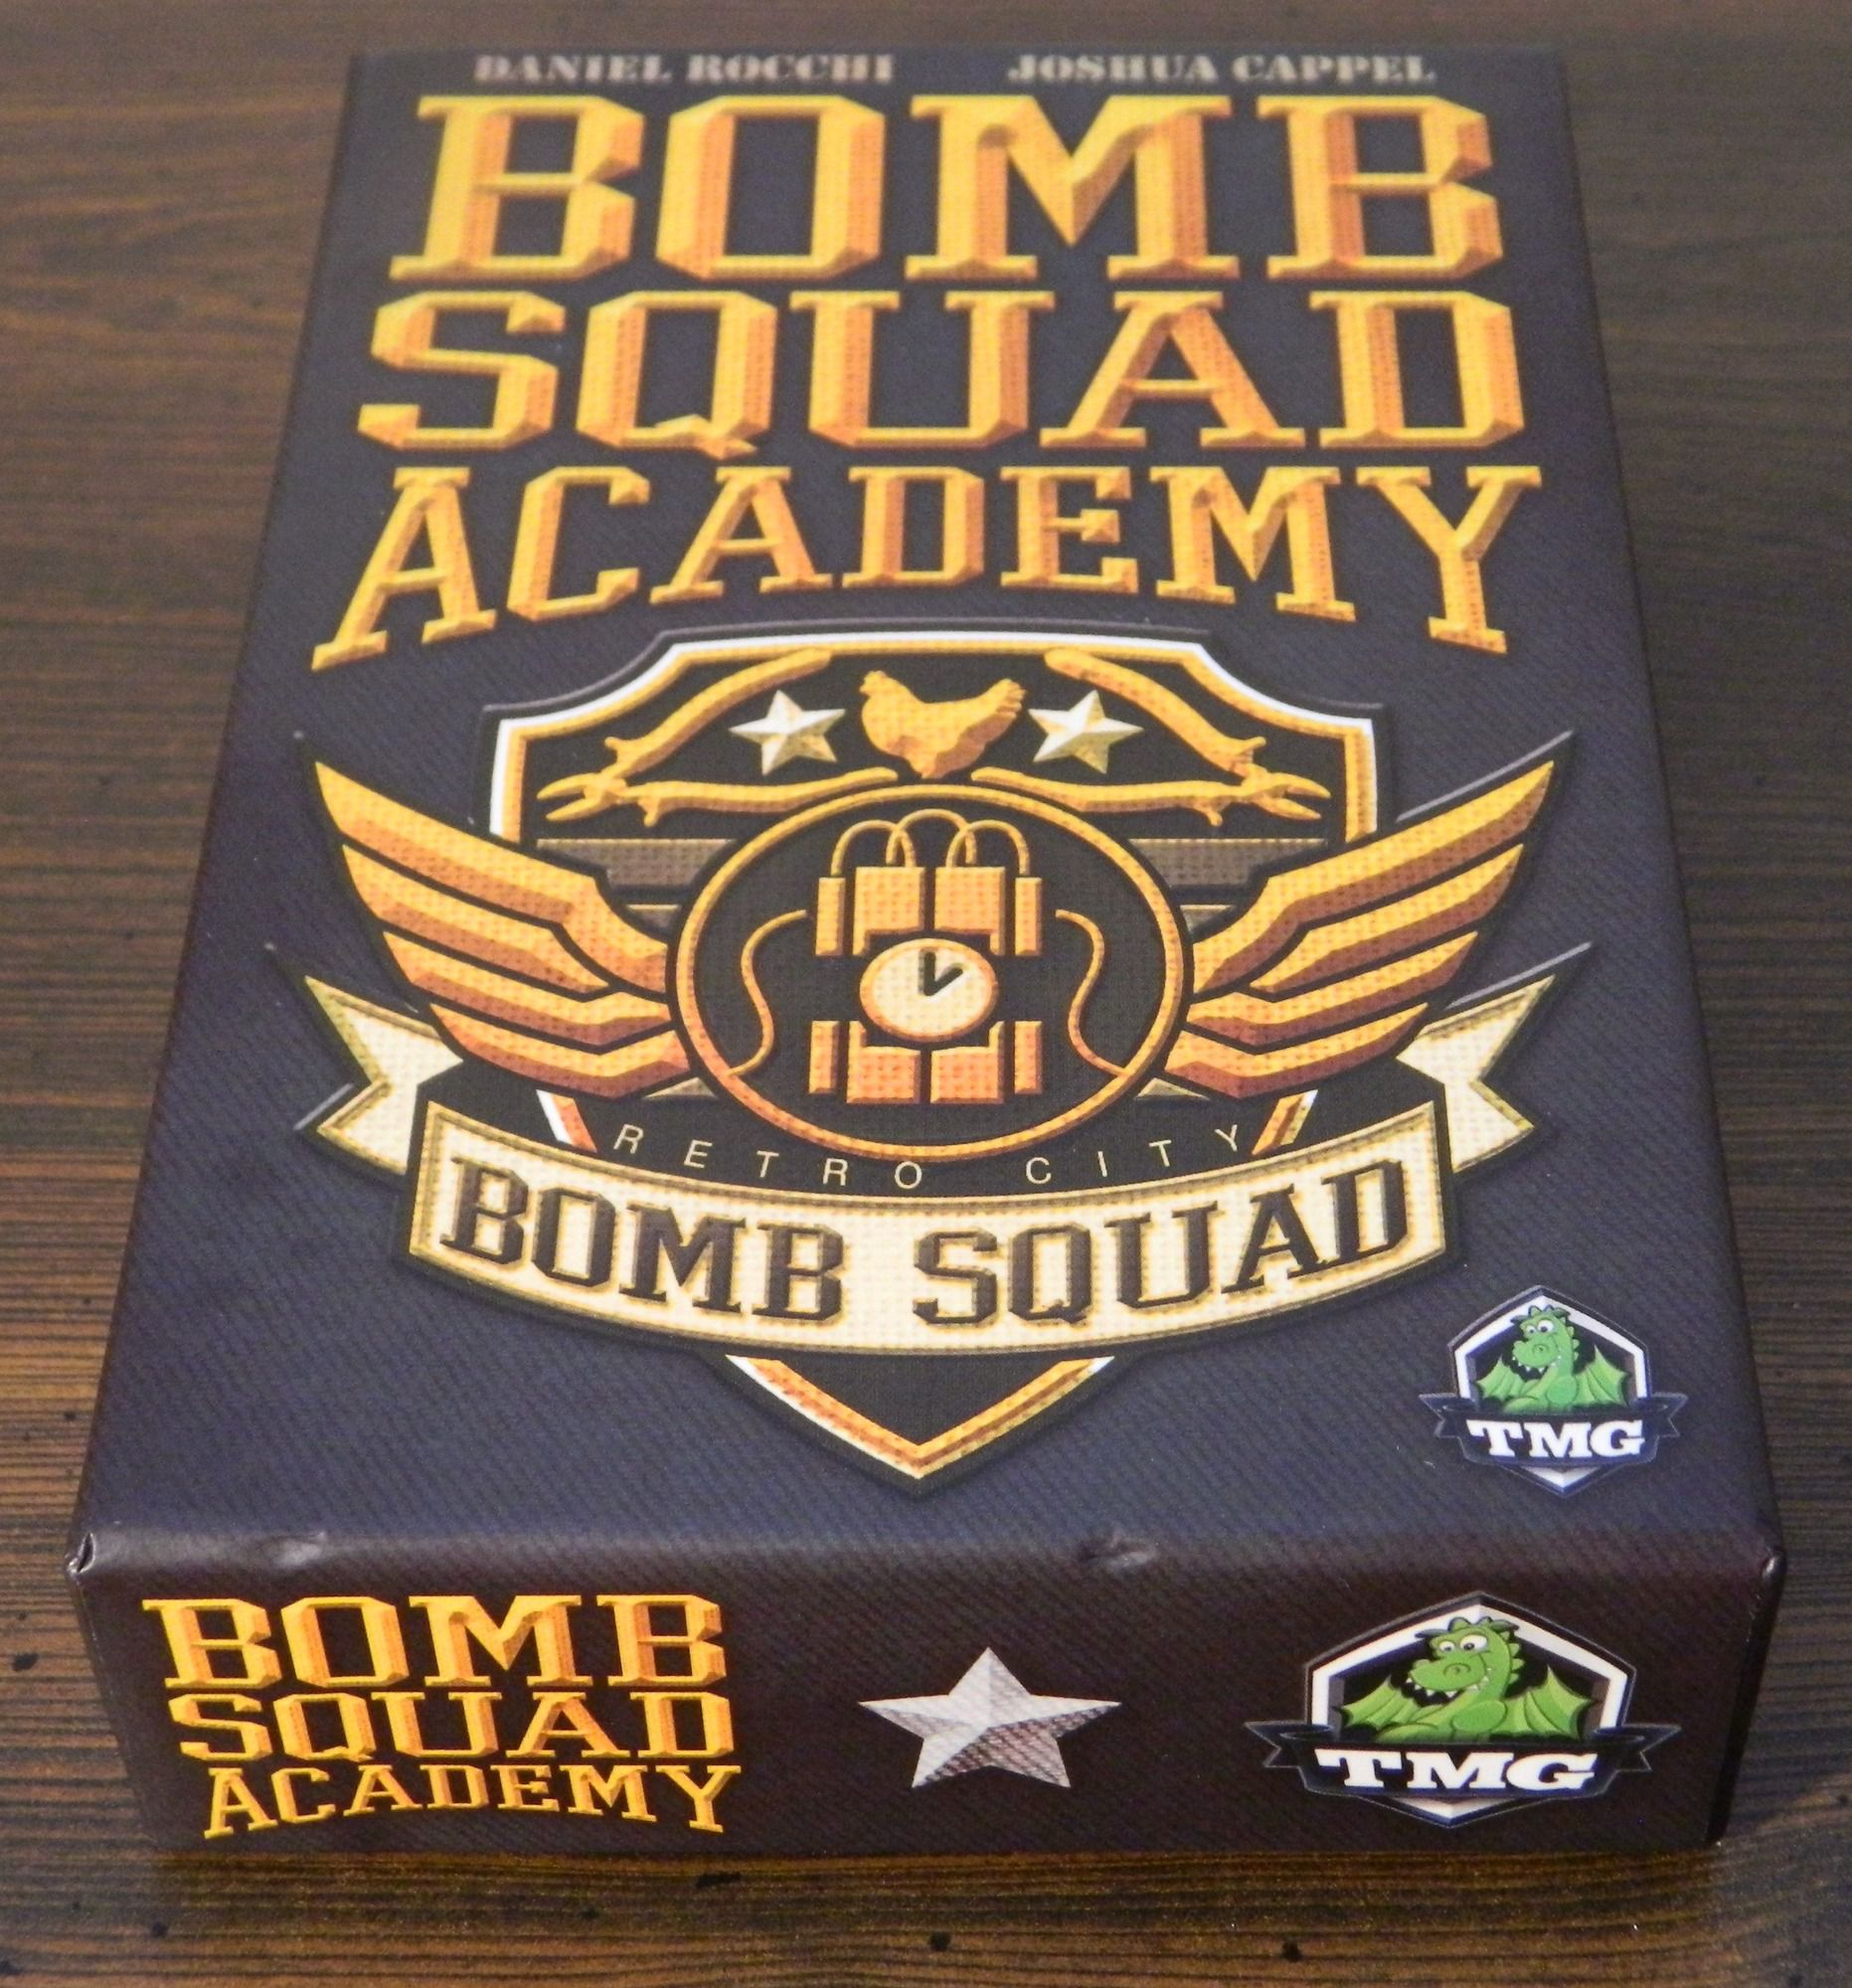 Box for Bomb Squad Academy